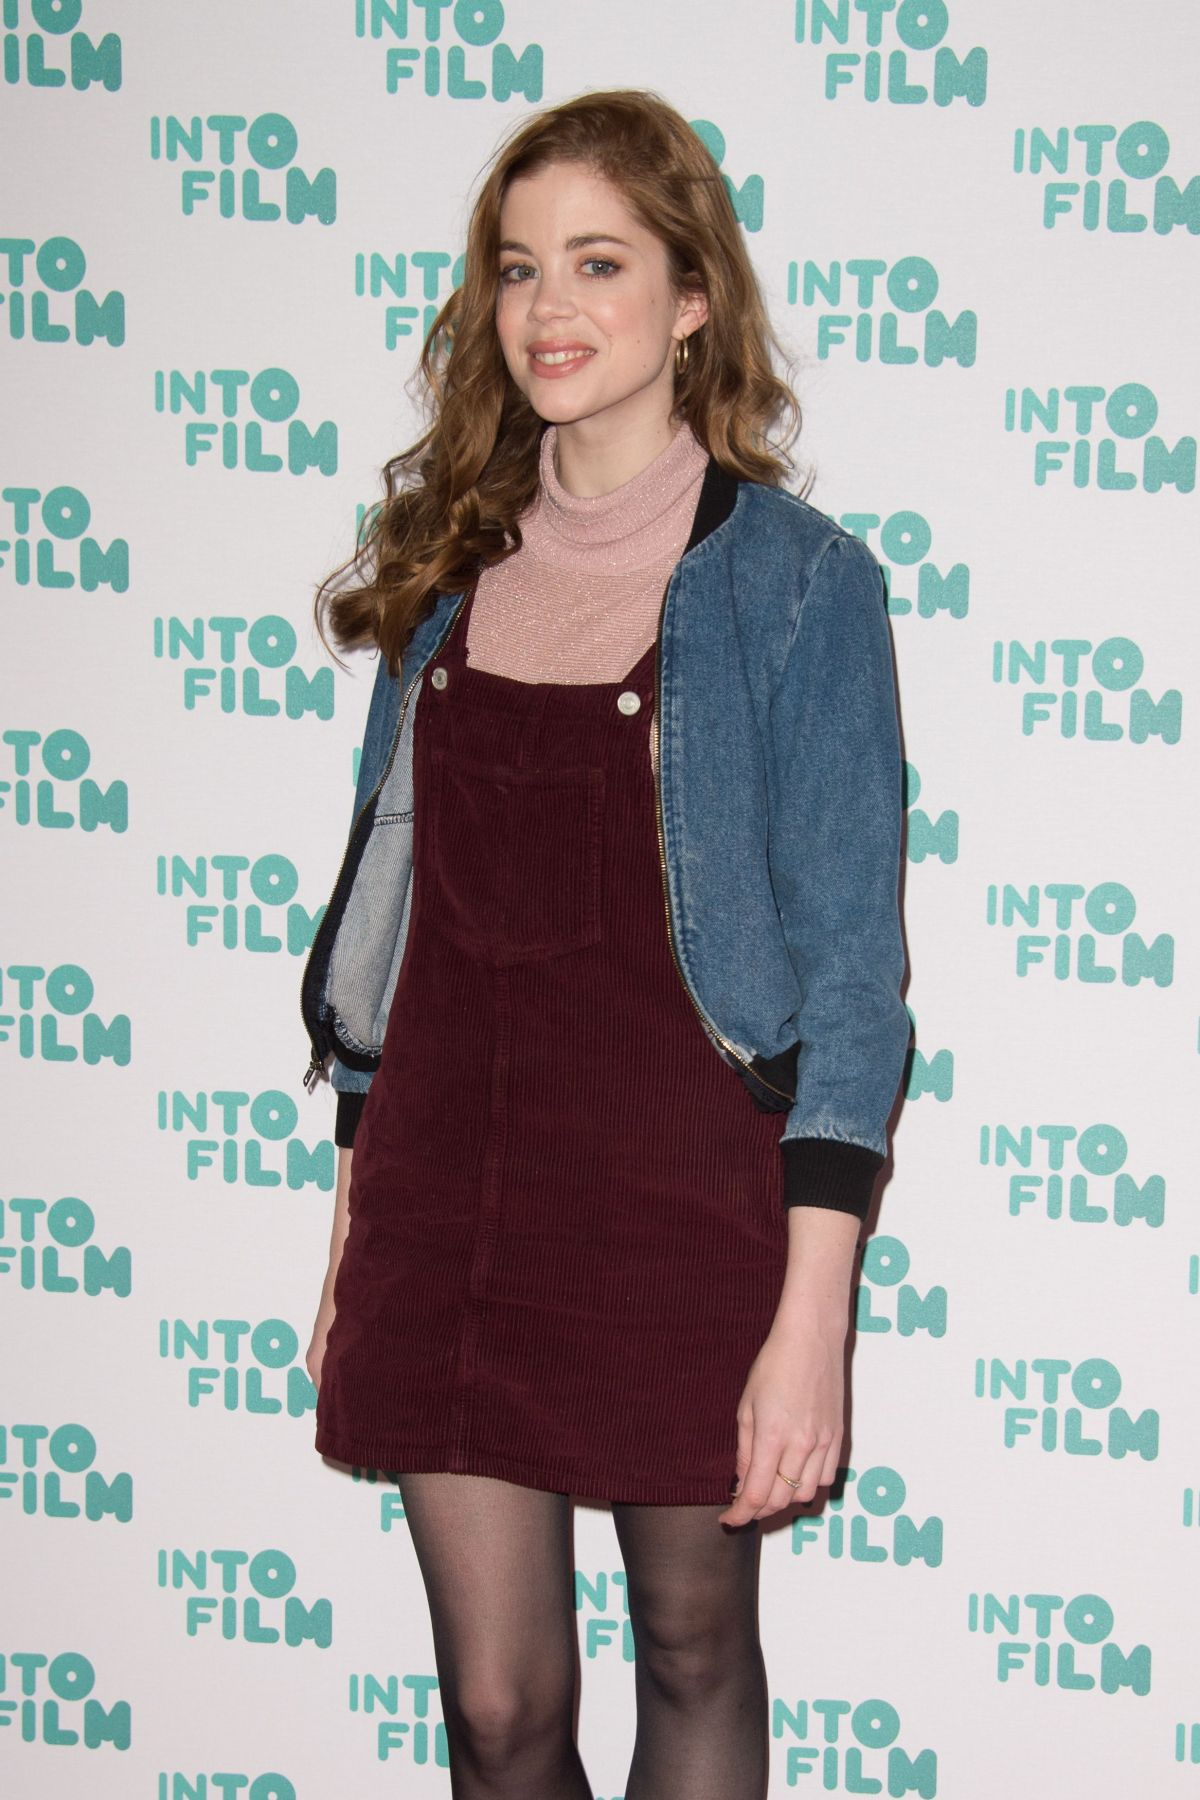 CHARLOTTE HOPE at Into Film Awards in London 03/14/2017